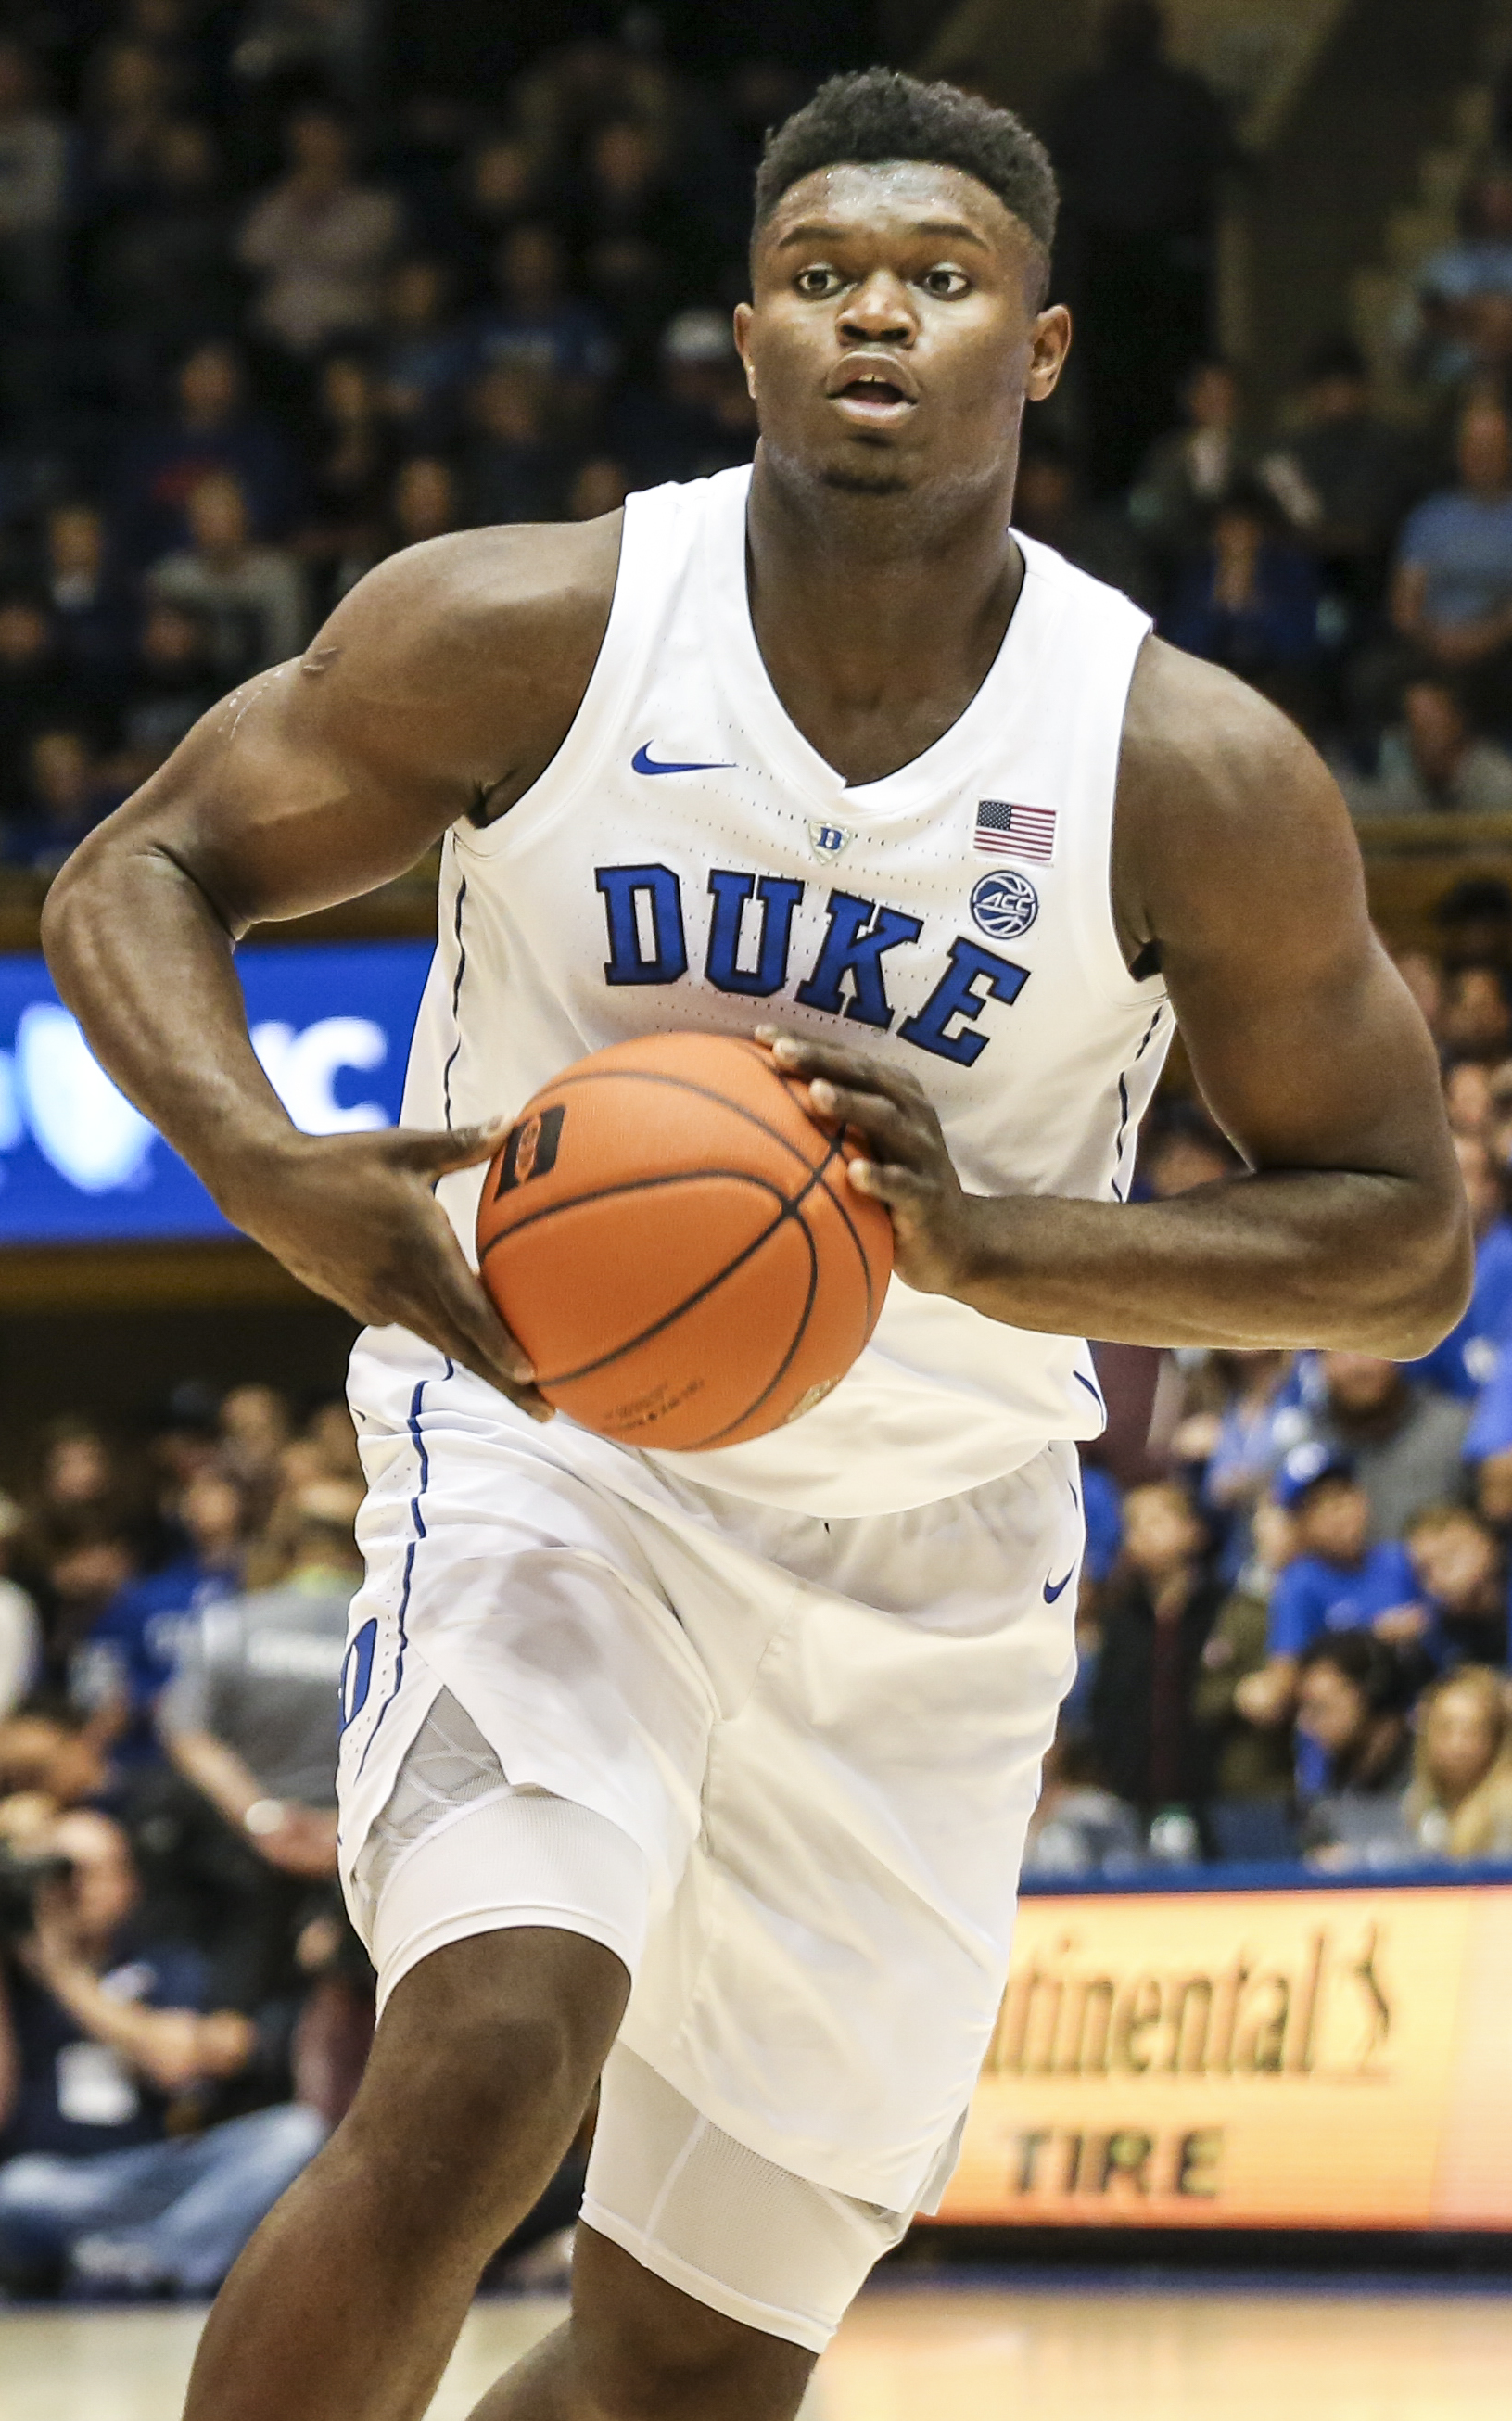 Former Duke Student-Athlete Zion Williamson